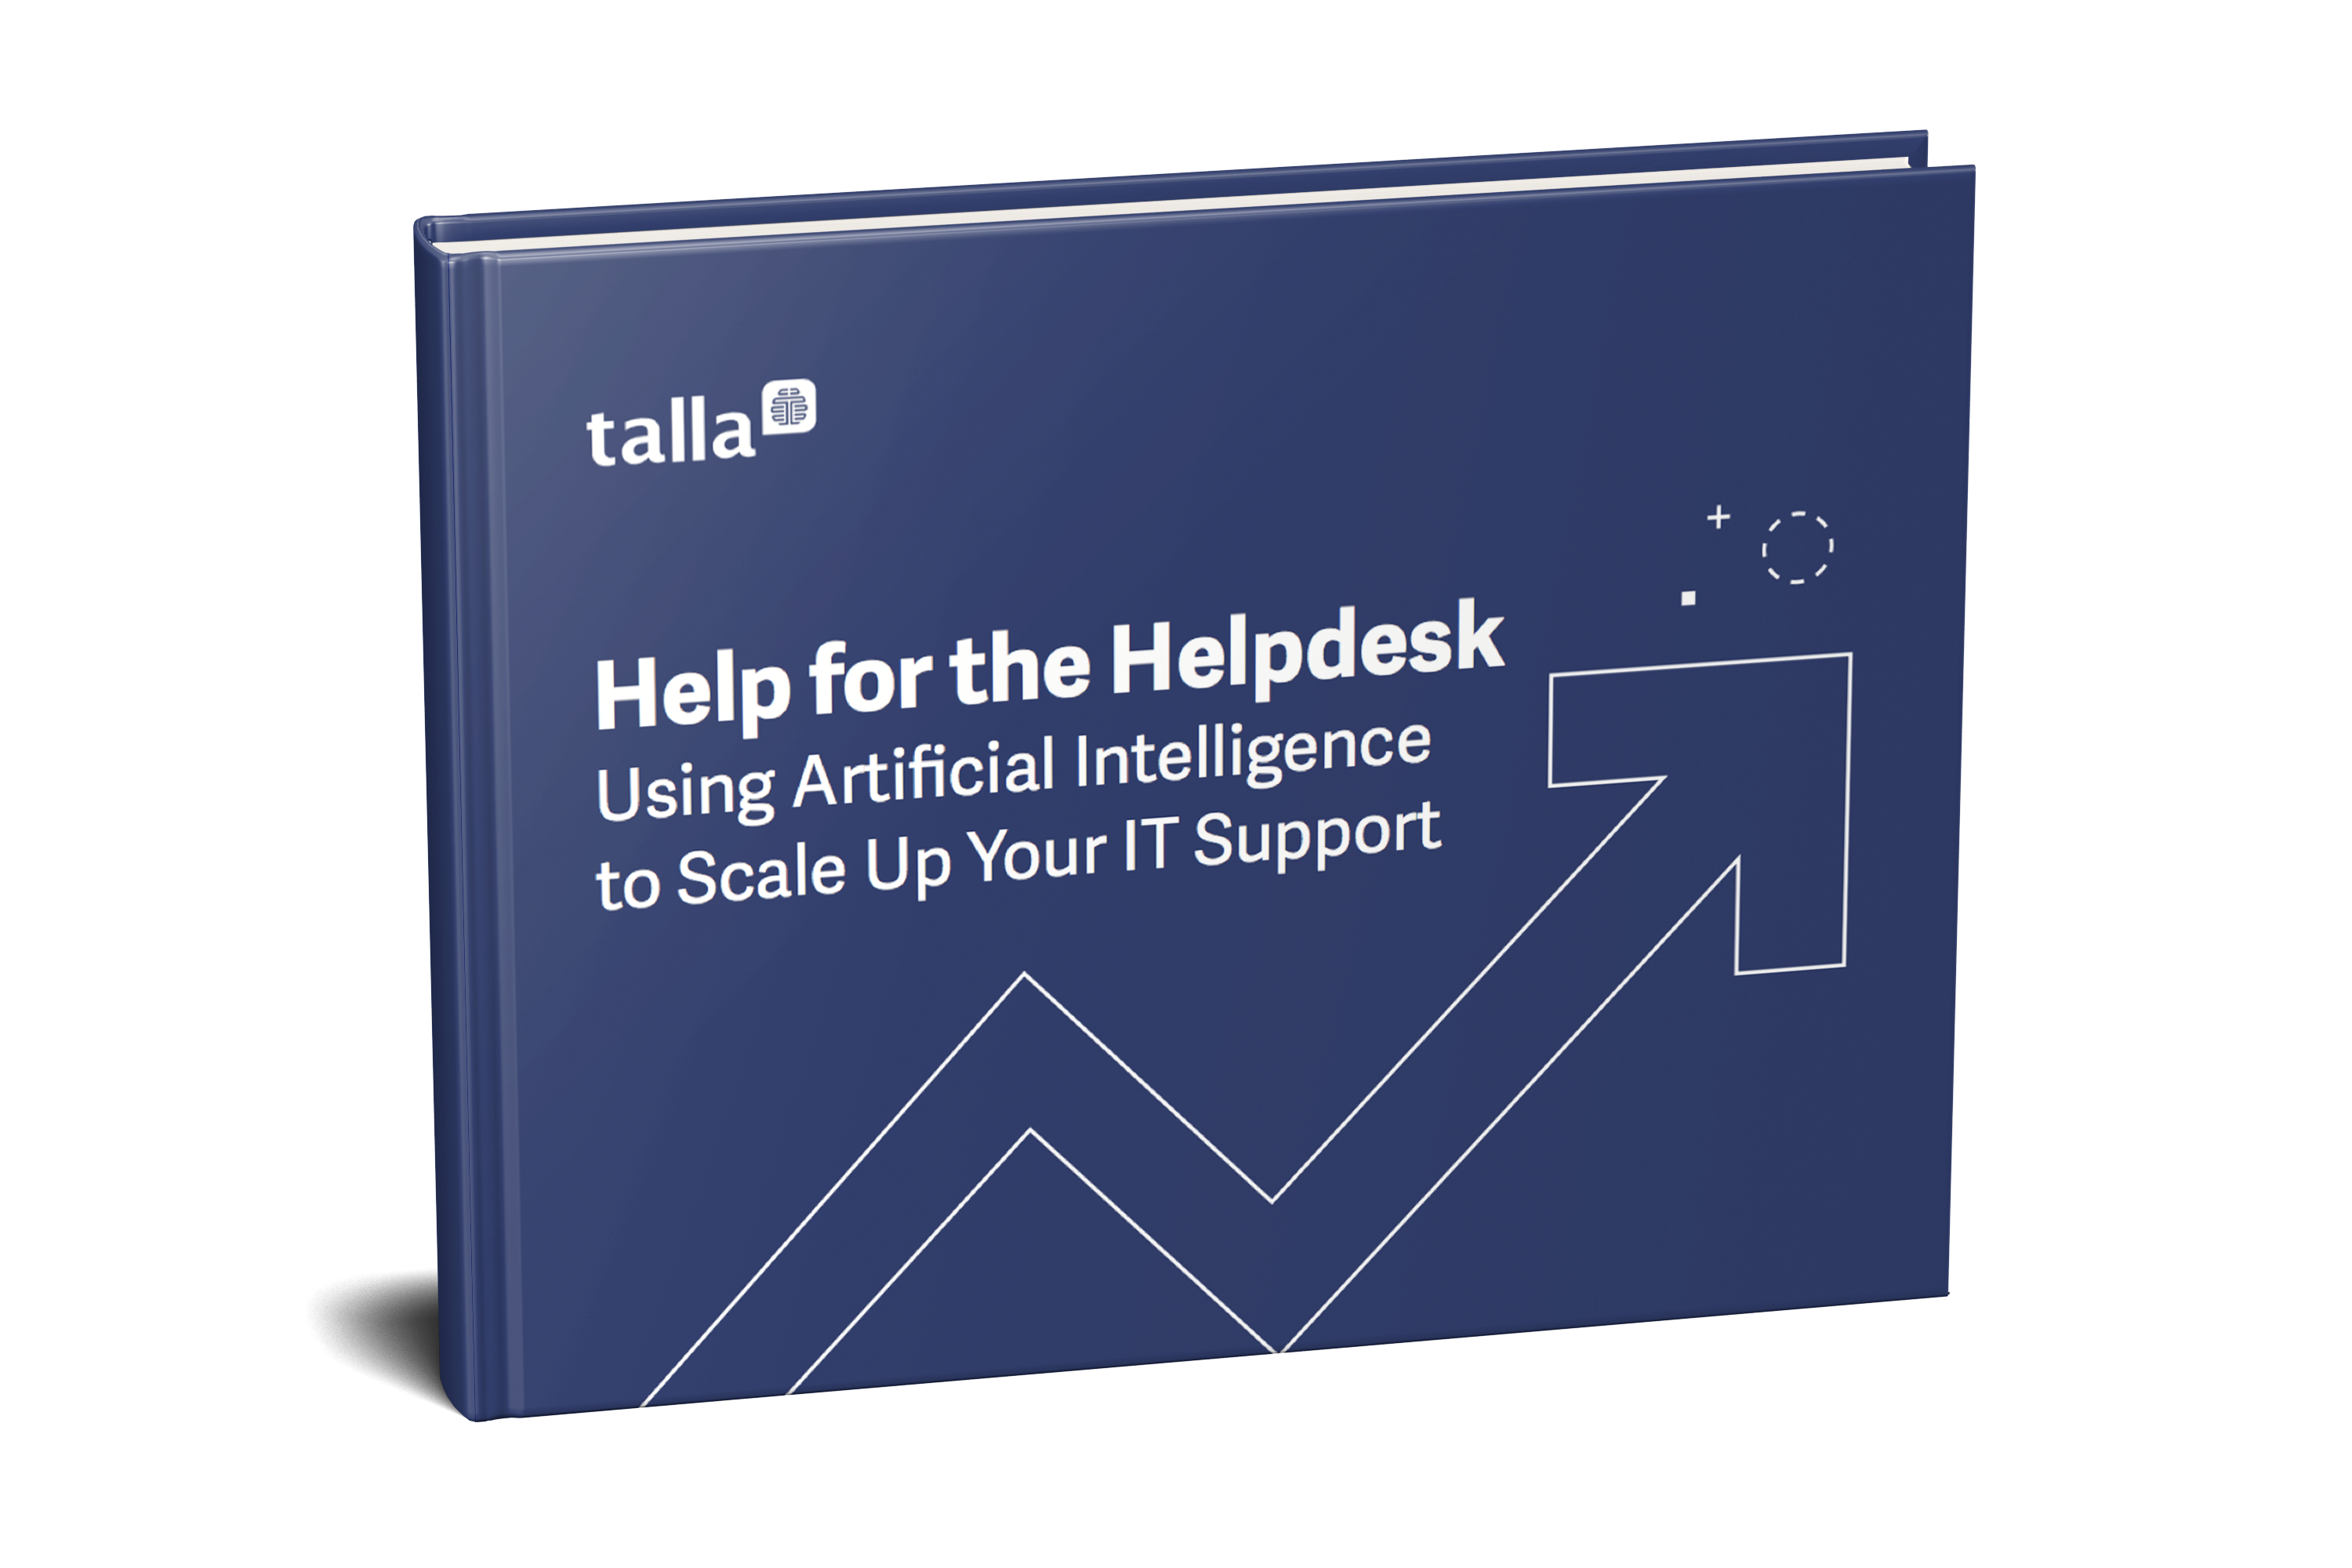 How-to-Use-Artificial-Intelligence-to-Scale-Up-Your-IT-Support-Cover.png